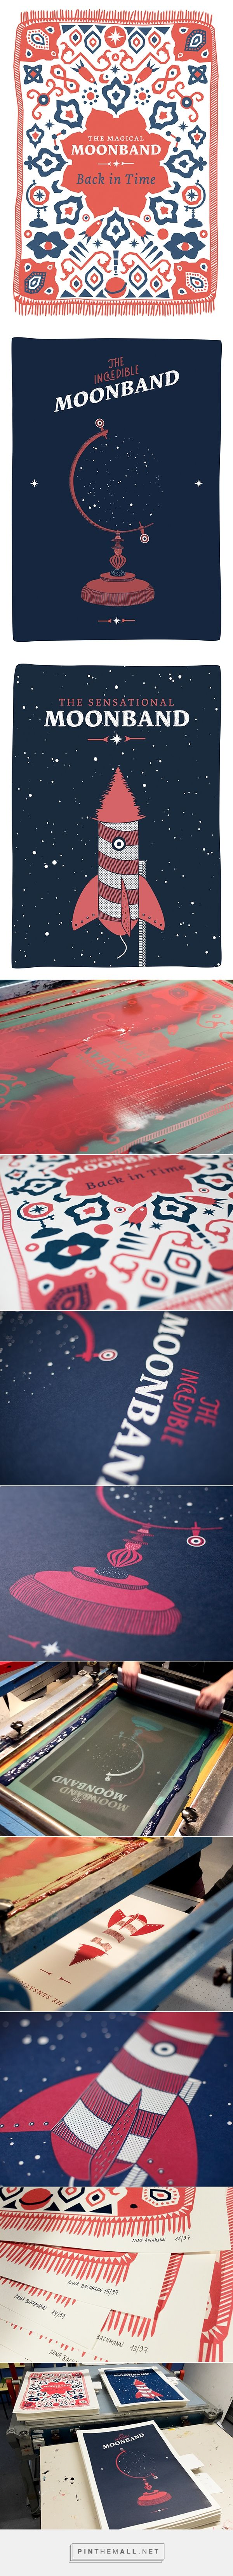 The Moonband - Screen Printed Gig Posters by Nina Bachman